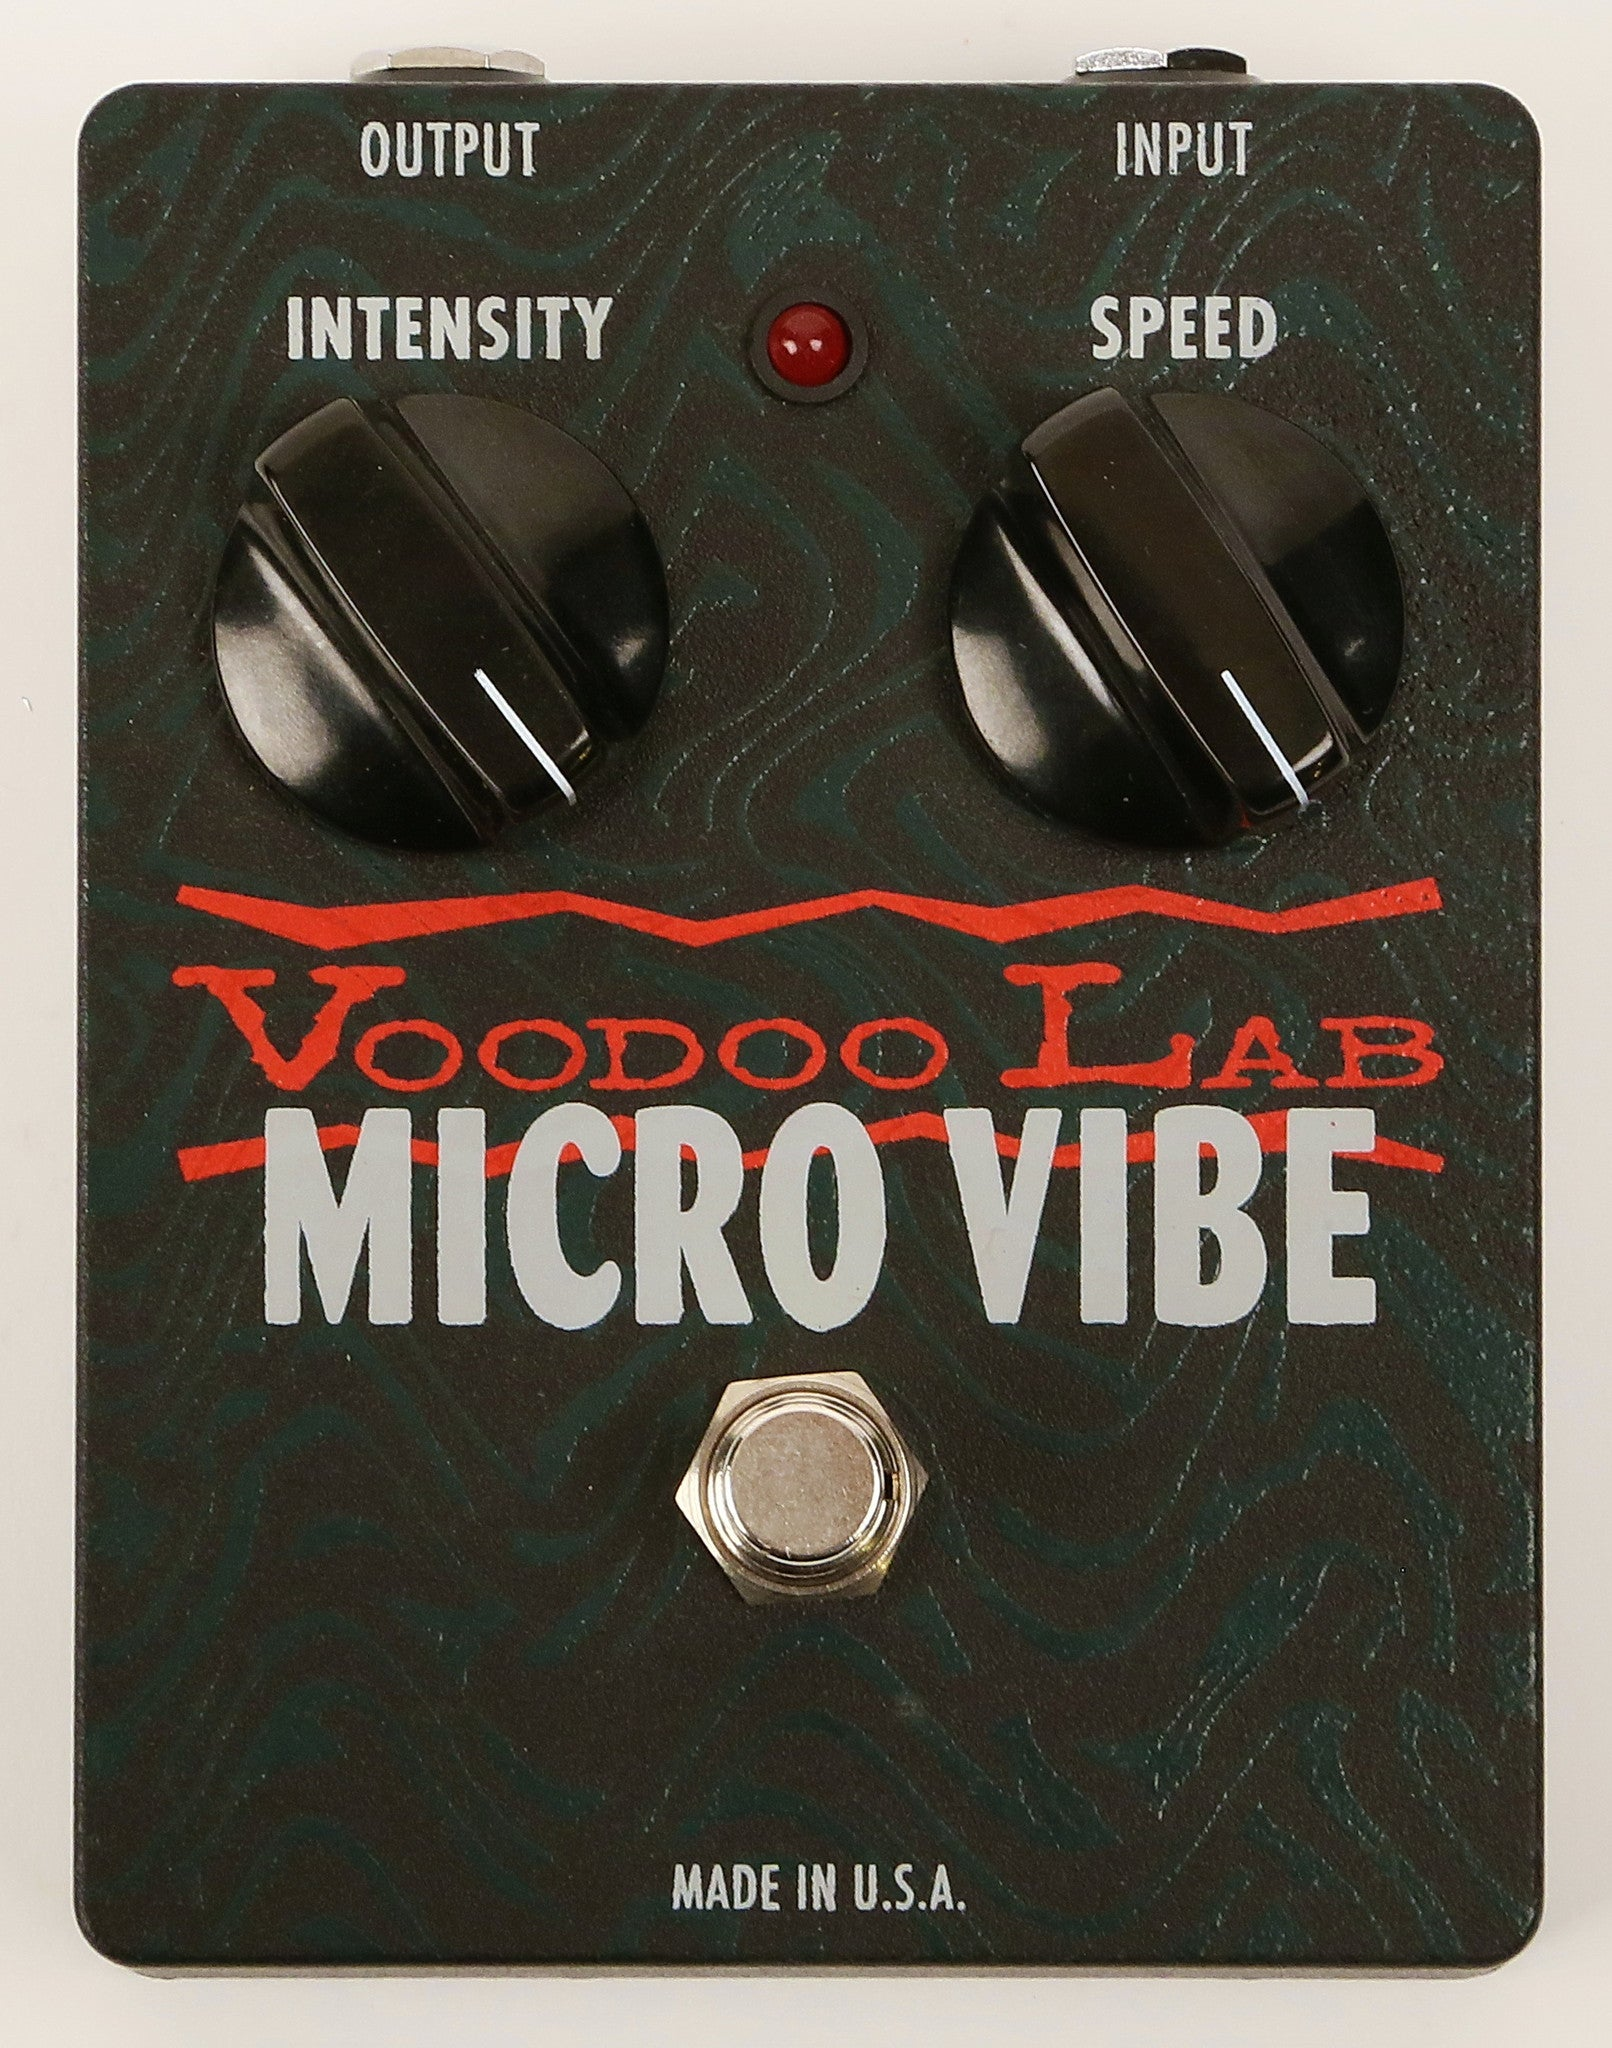 Voodoo Lab Micro Vibe - Scratch & Dent